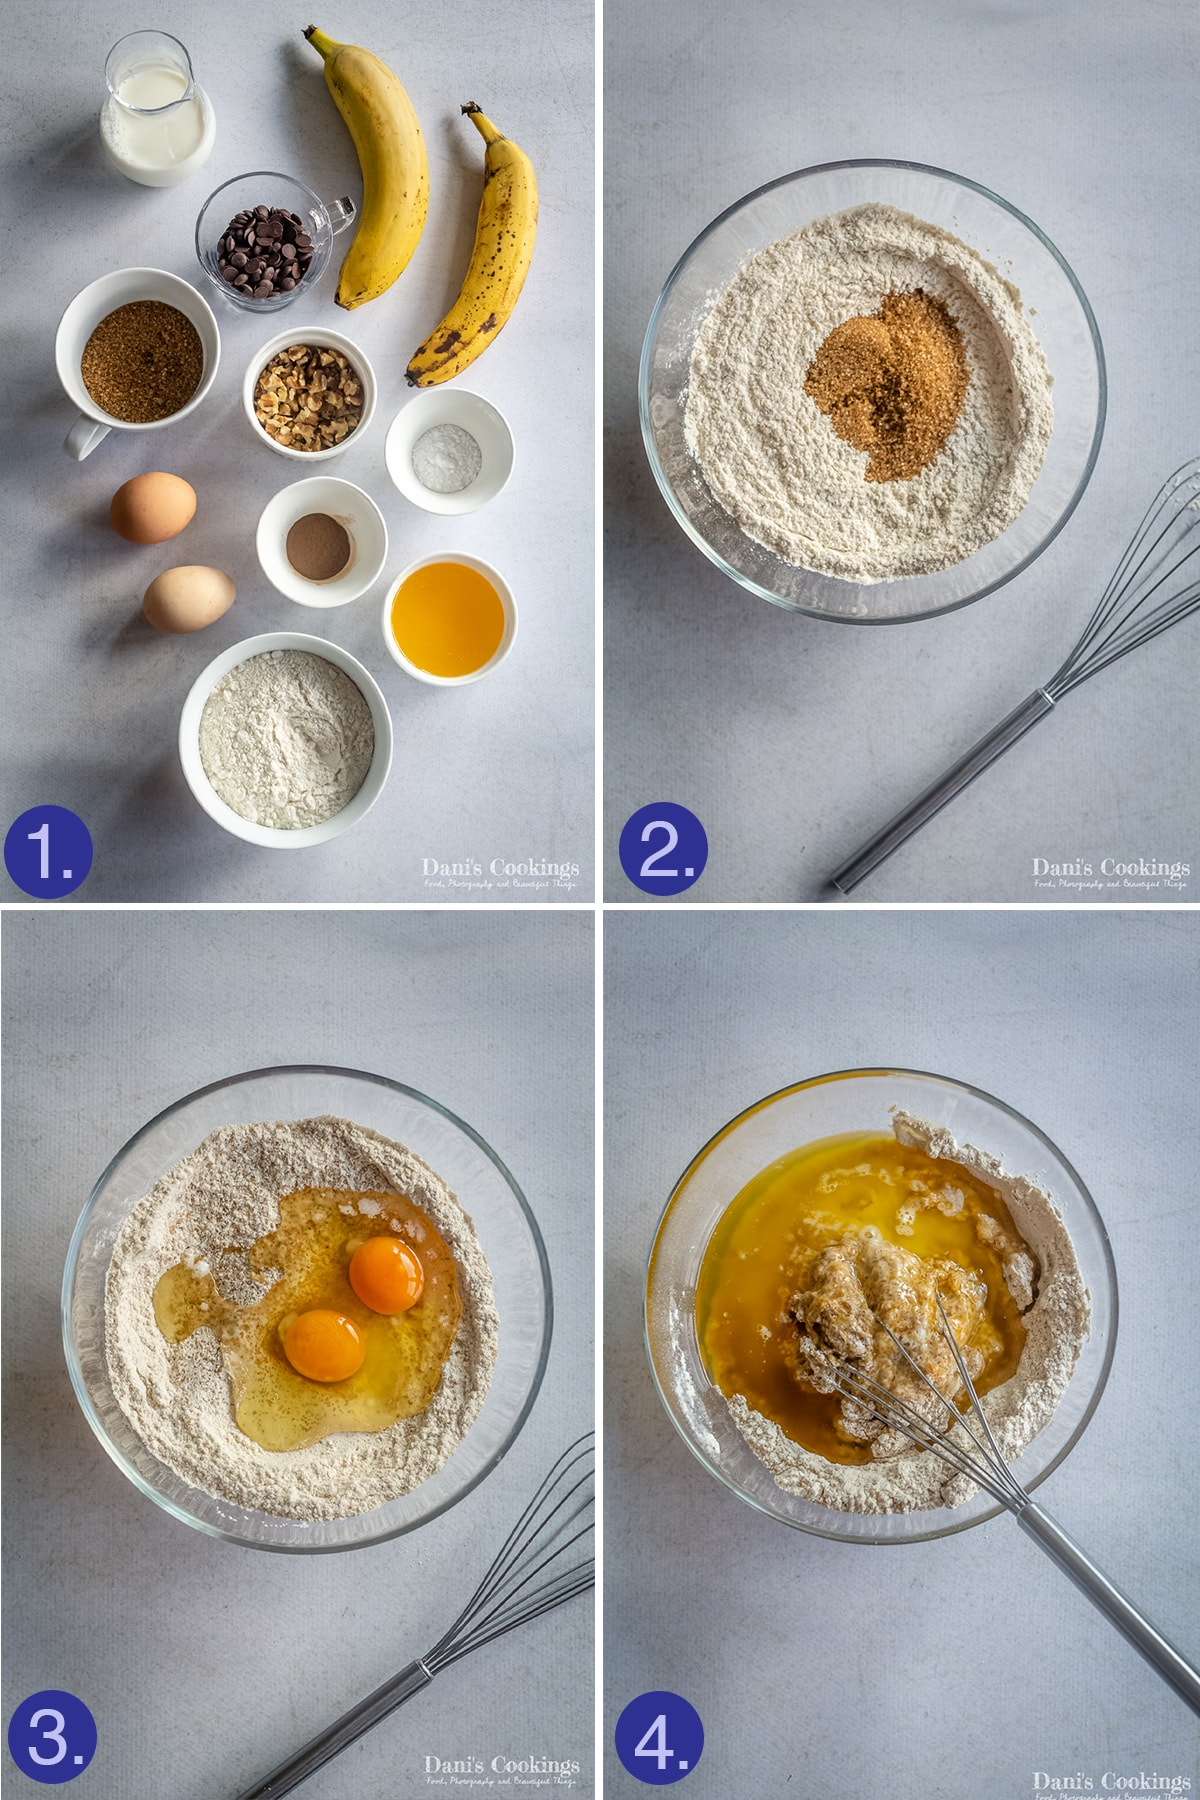 ingredients and first three steps to make banana bread